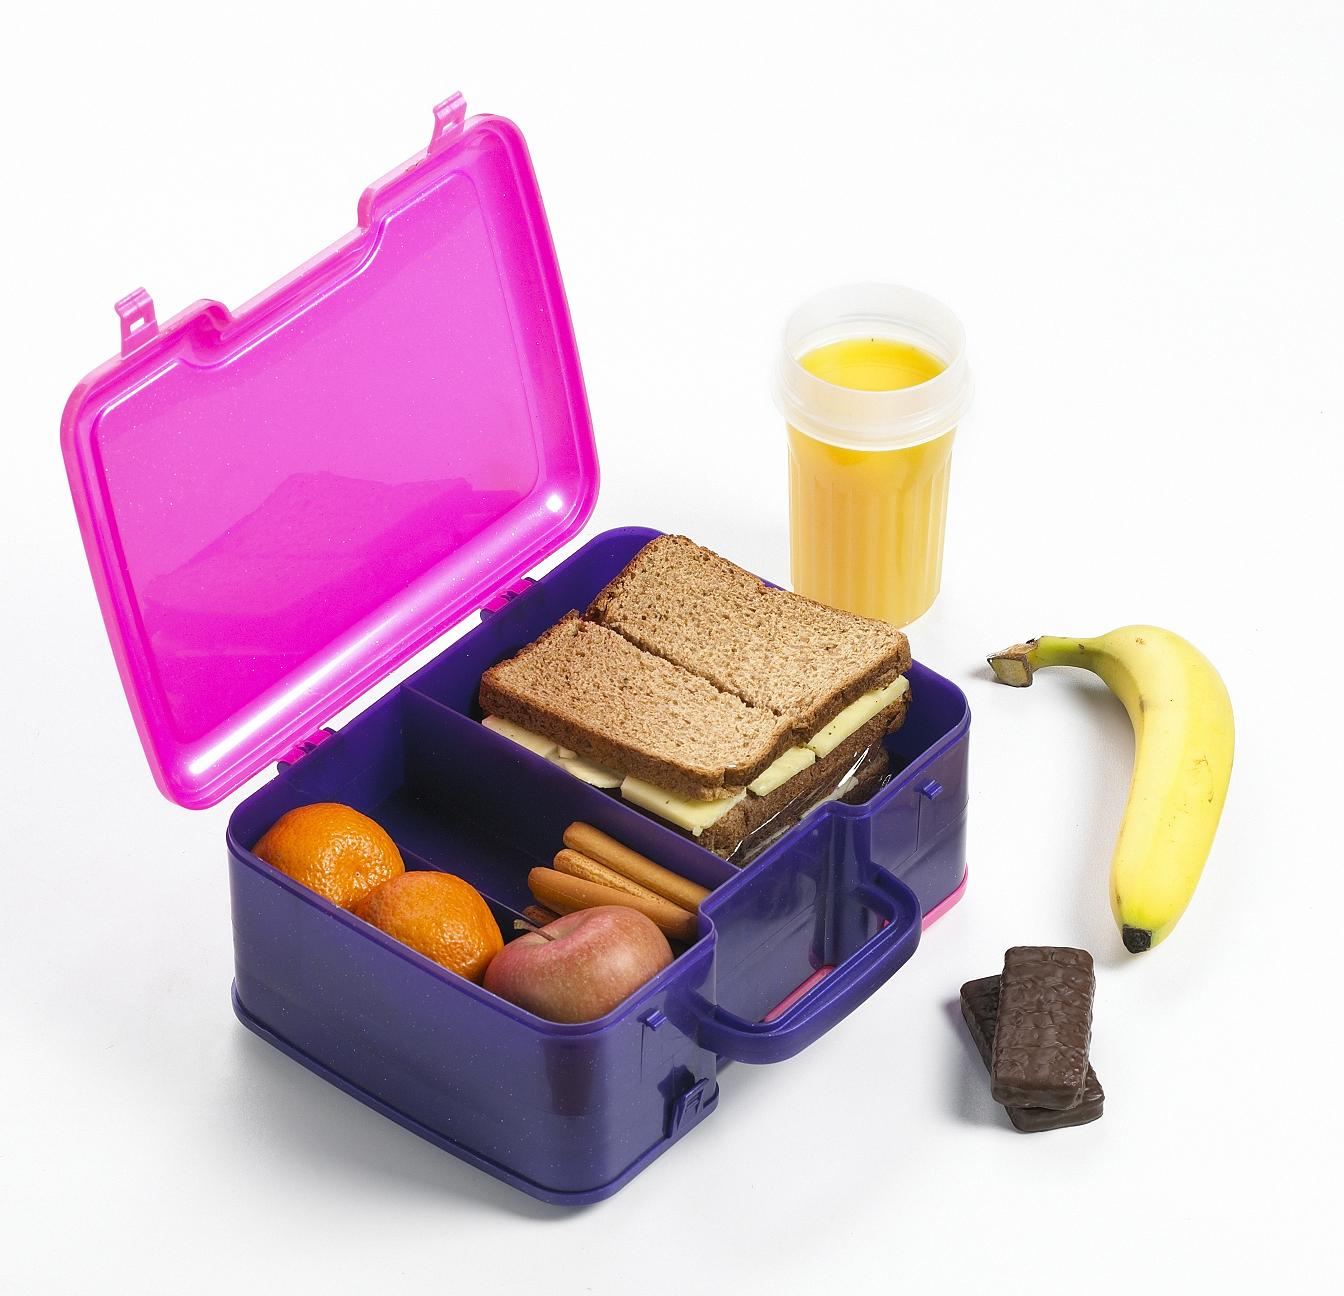 lunch box Lunch News Tips: June 14, 2012